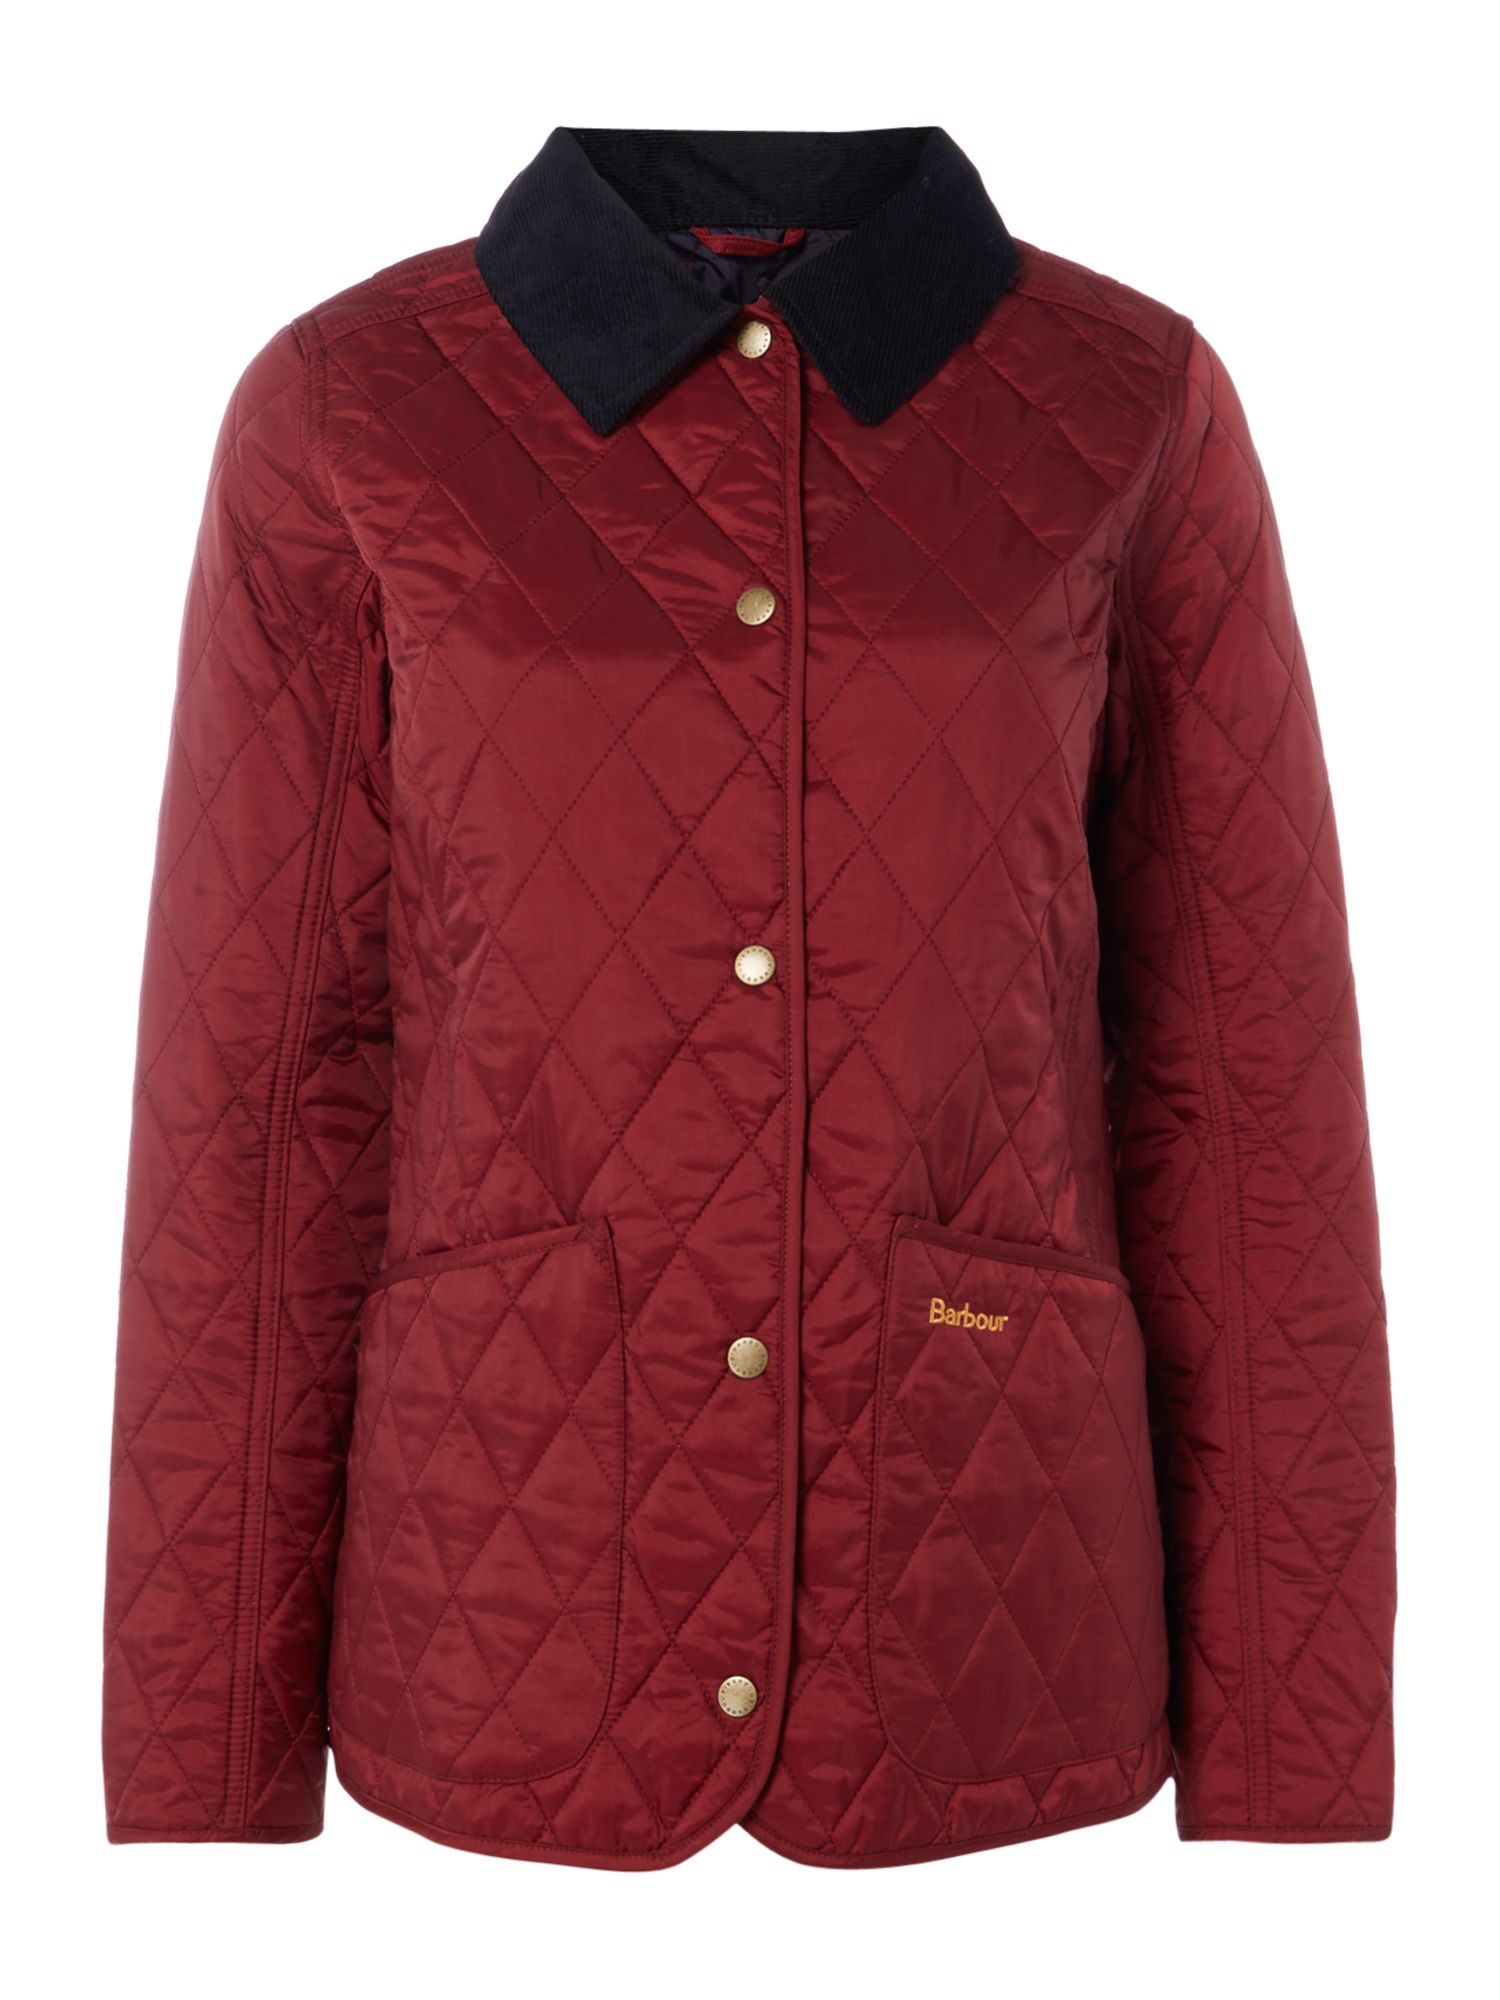 Barbour Exclusive Annandale Quilt Jacket, Wine